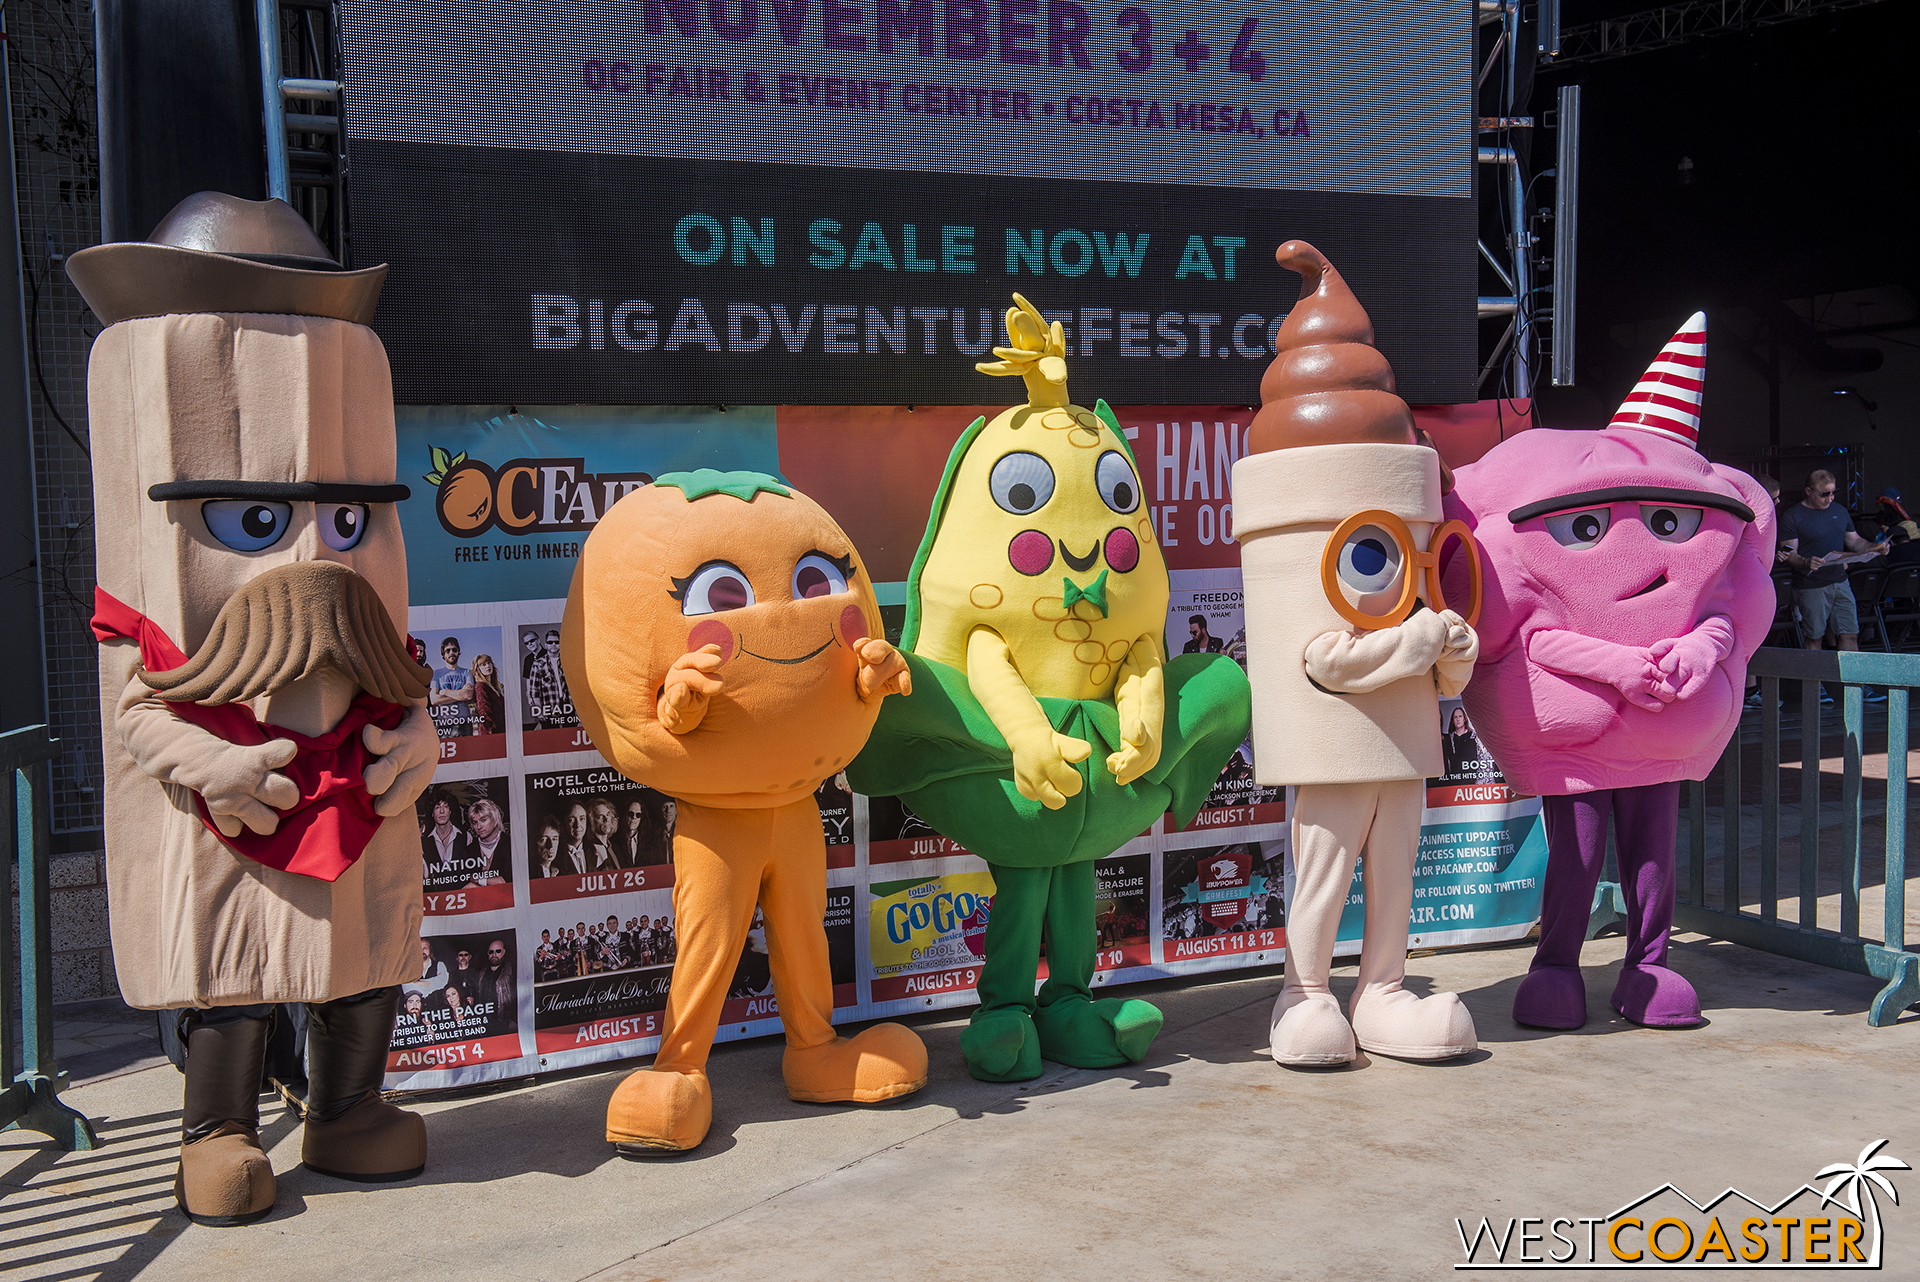 The Fair mascots are on hand for photos throughout the day.